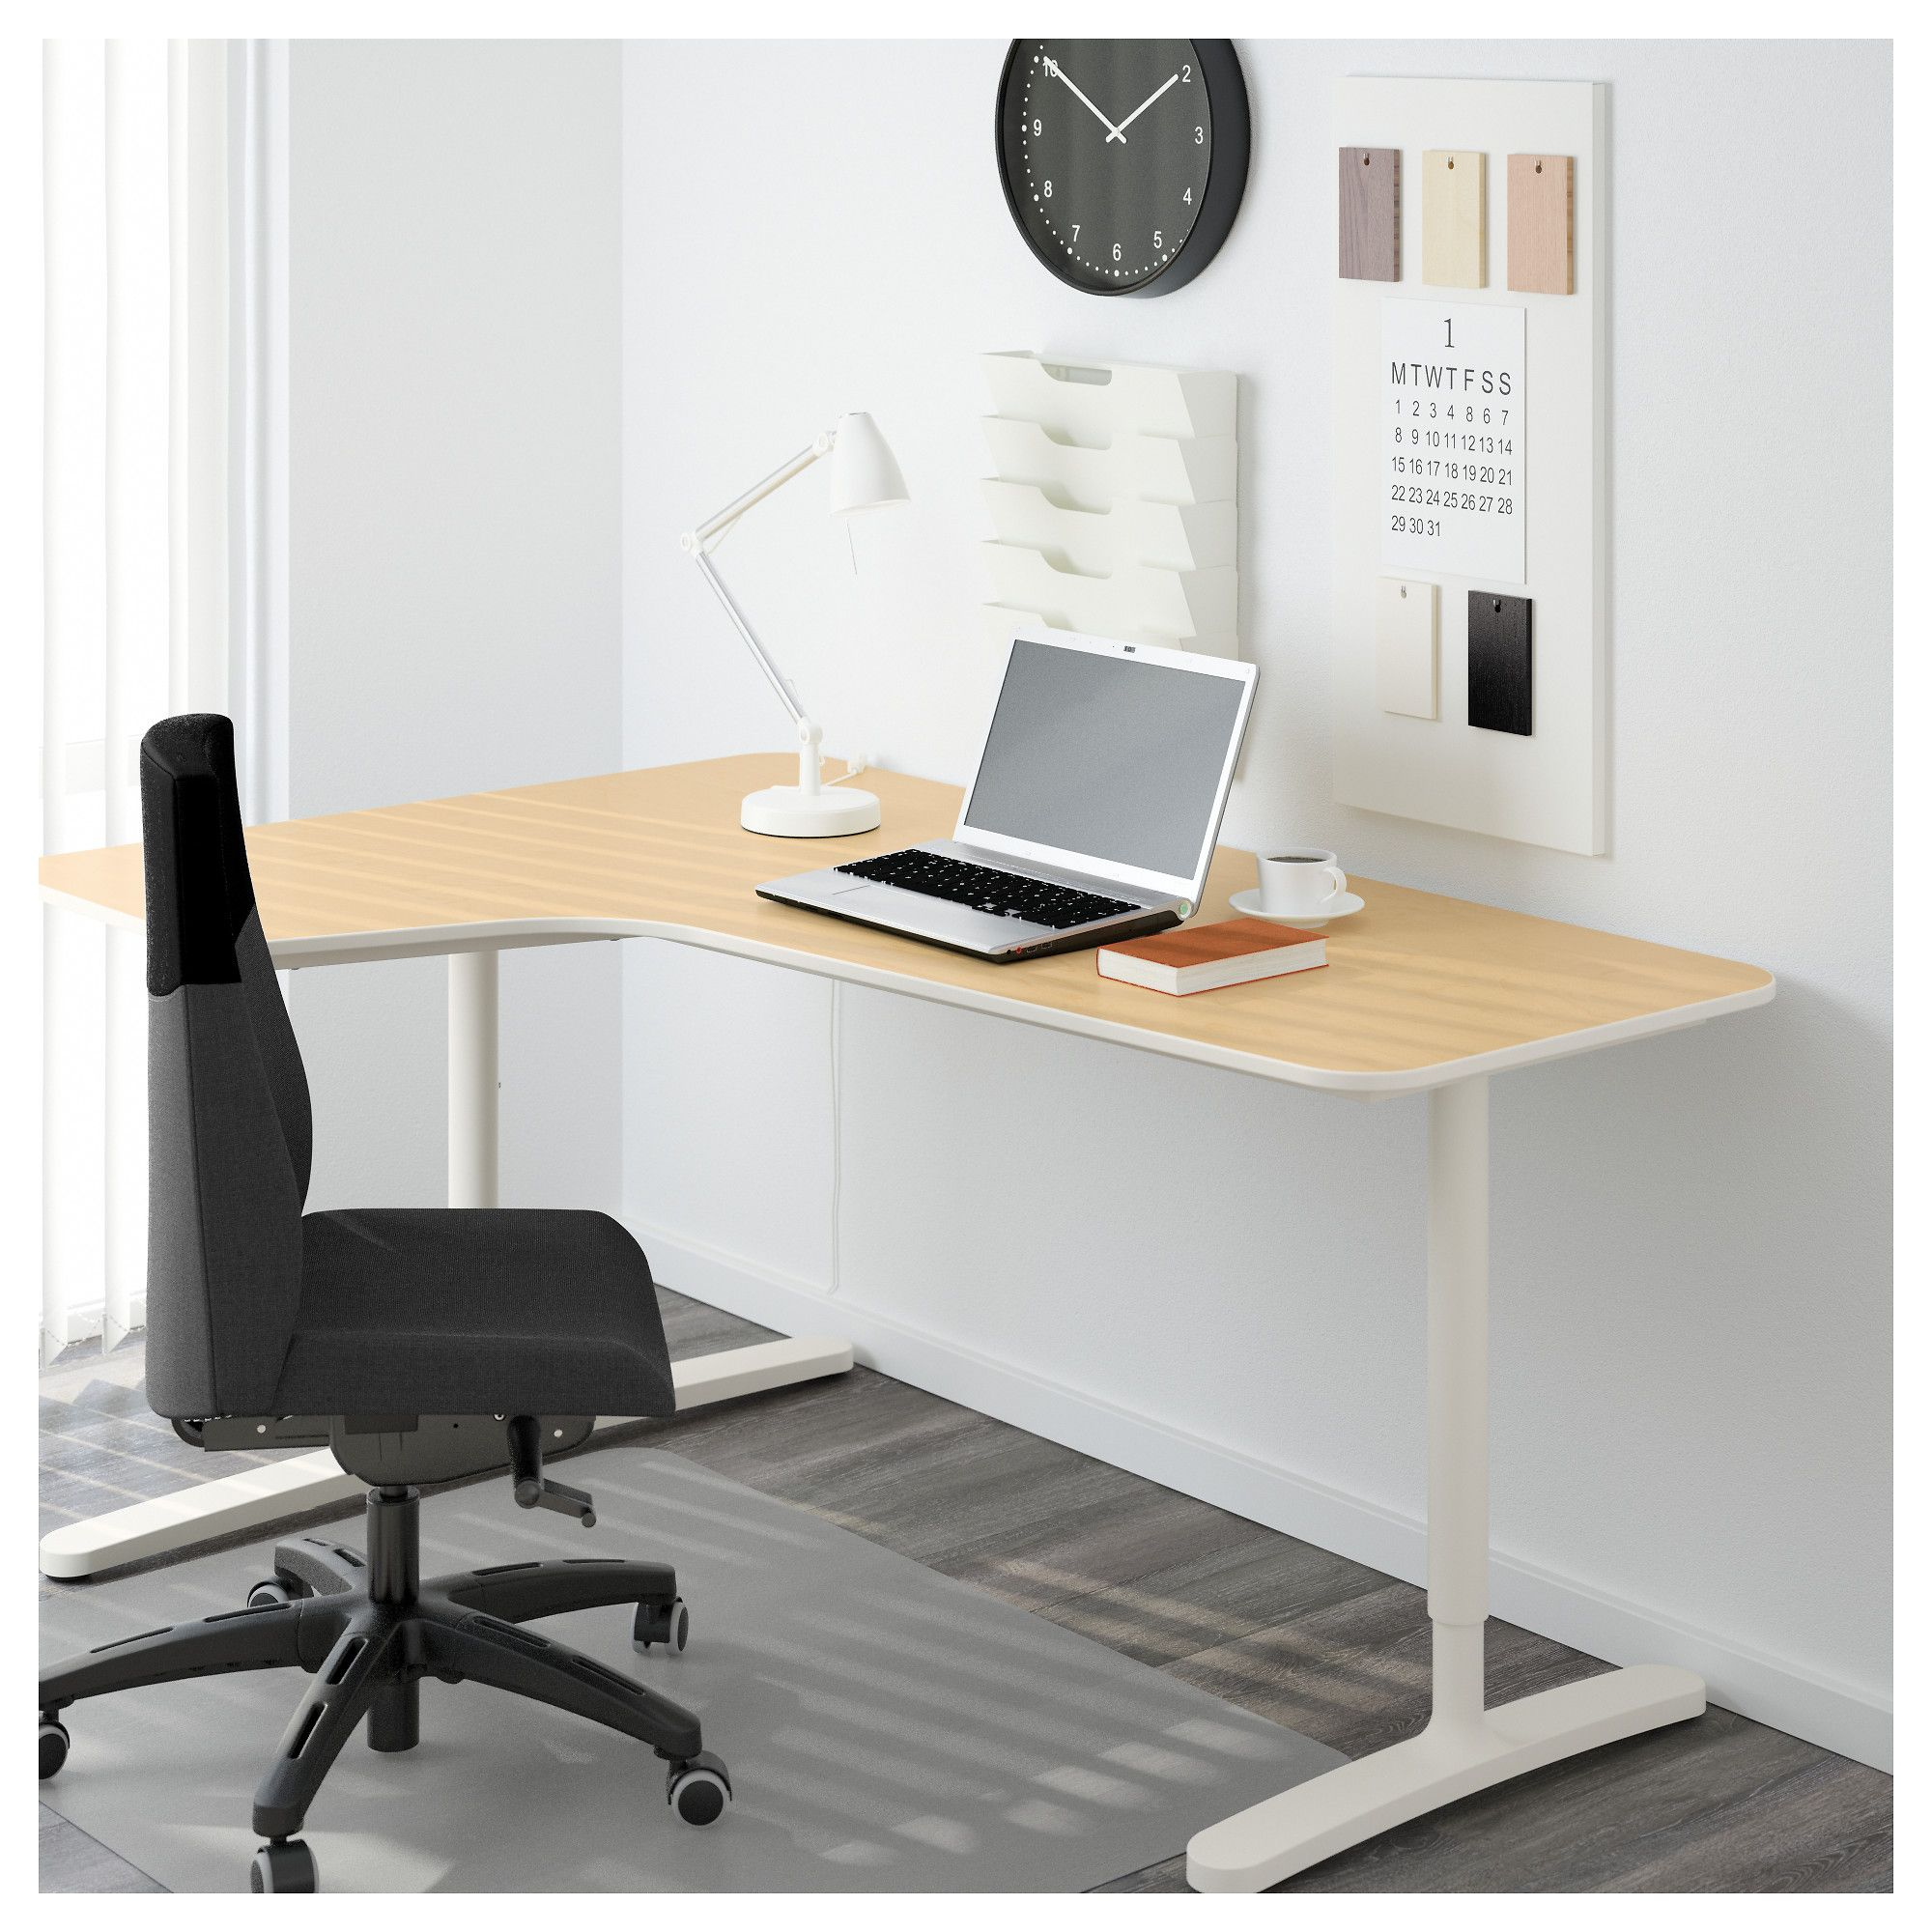 corner desk chair zero gravity office ikea bekant left birch veneer white products